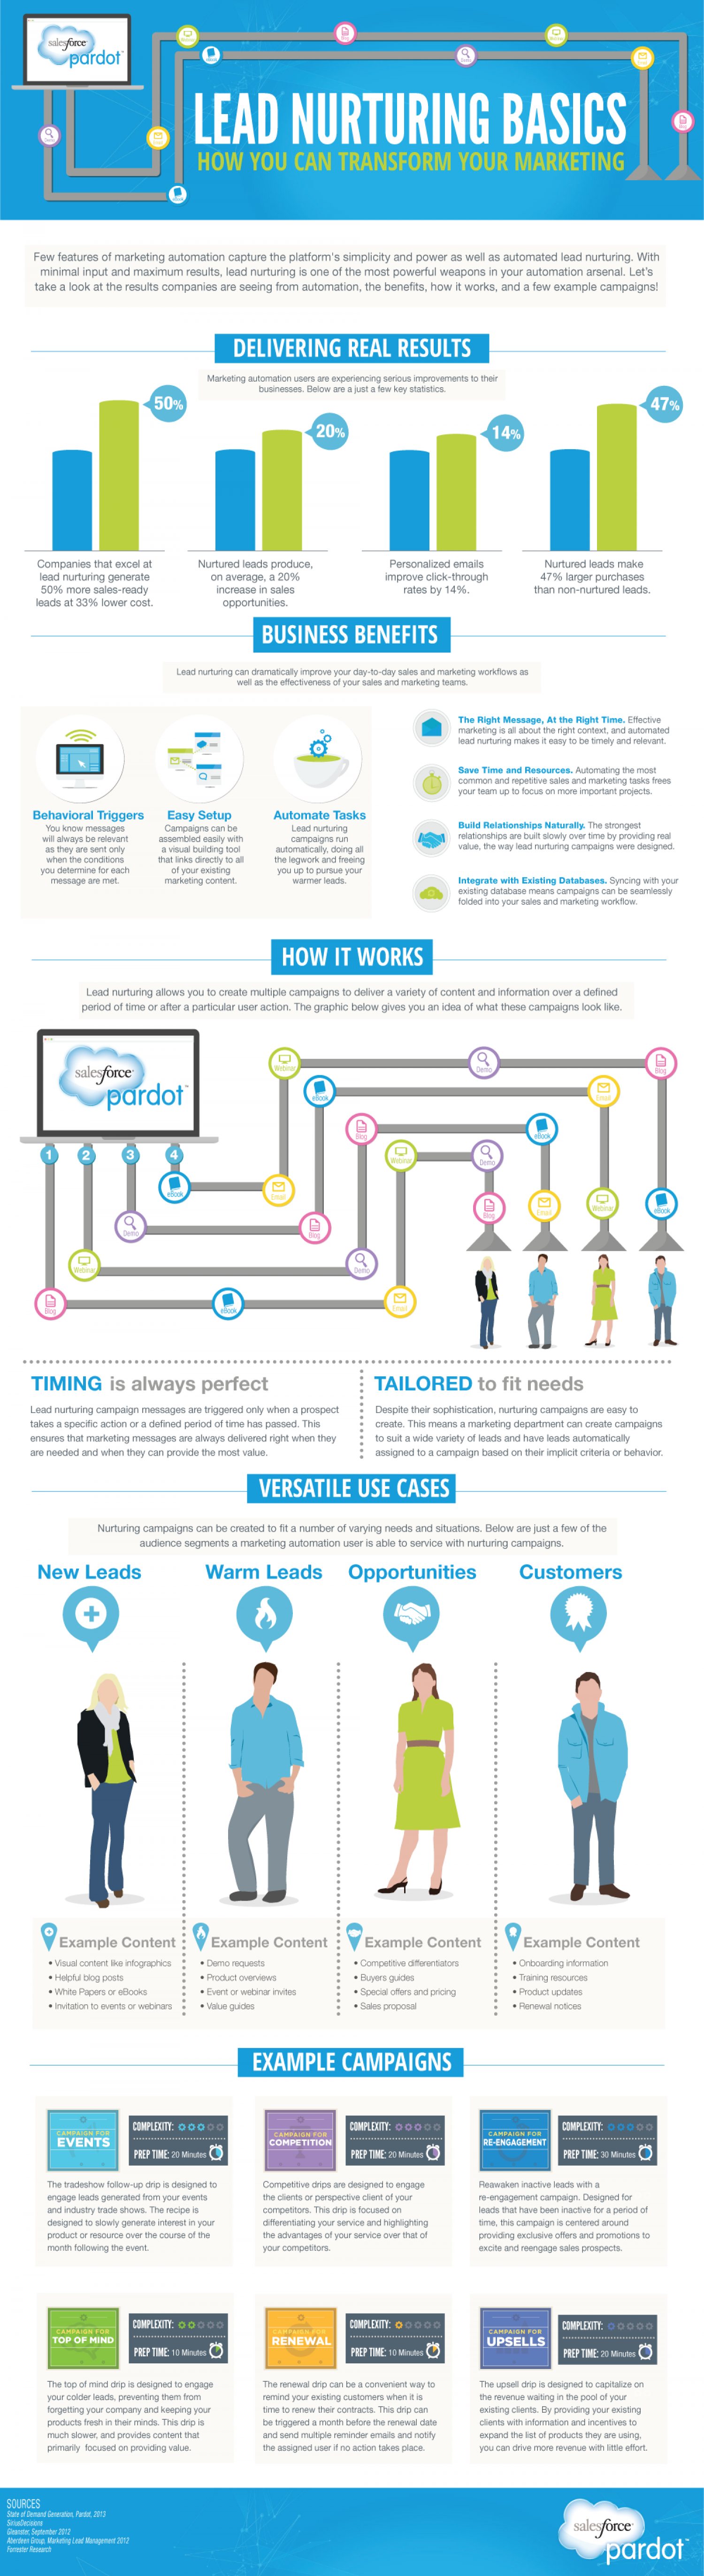 The Basics of Lead Nurturing Infographic